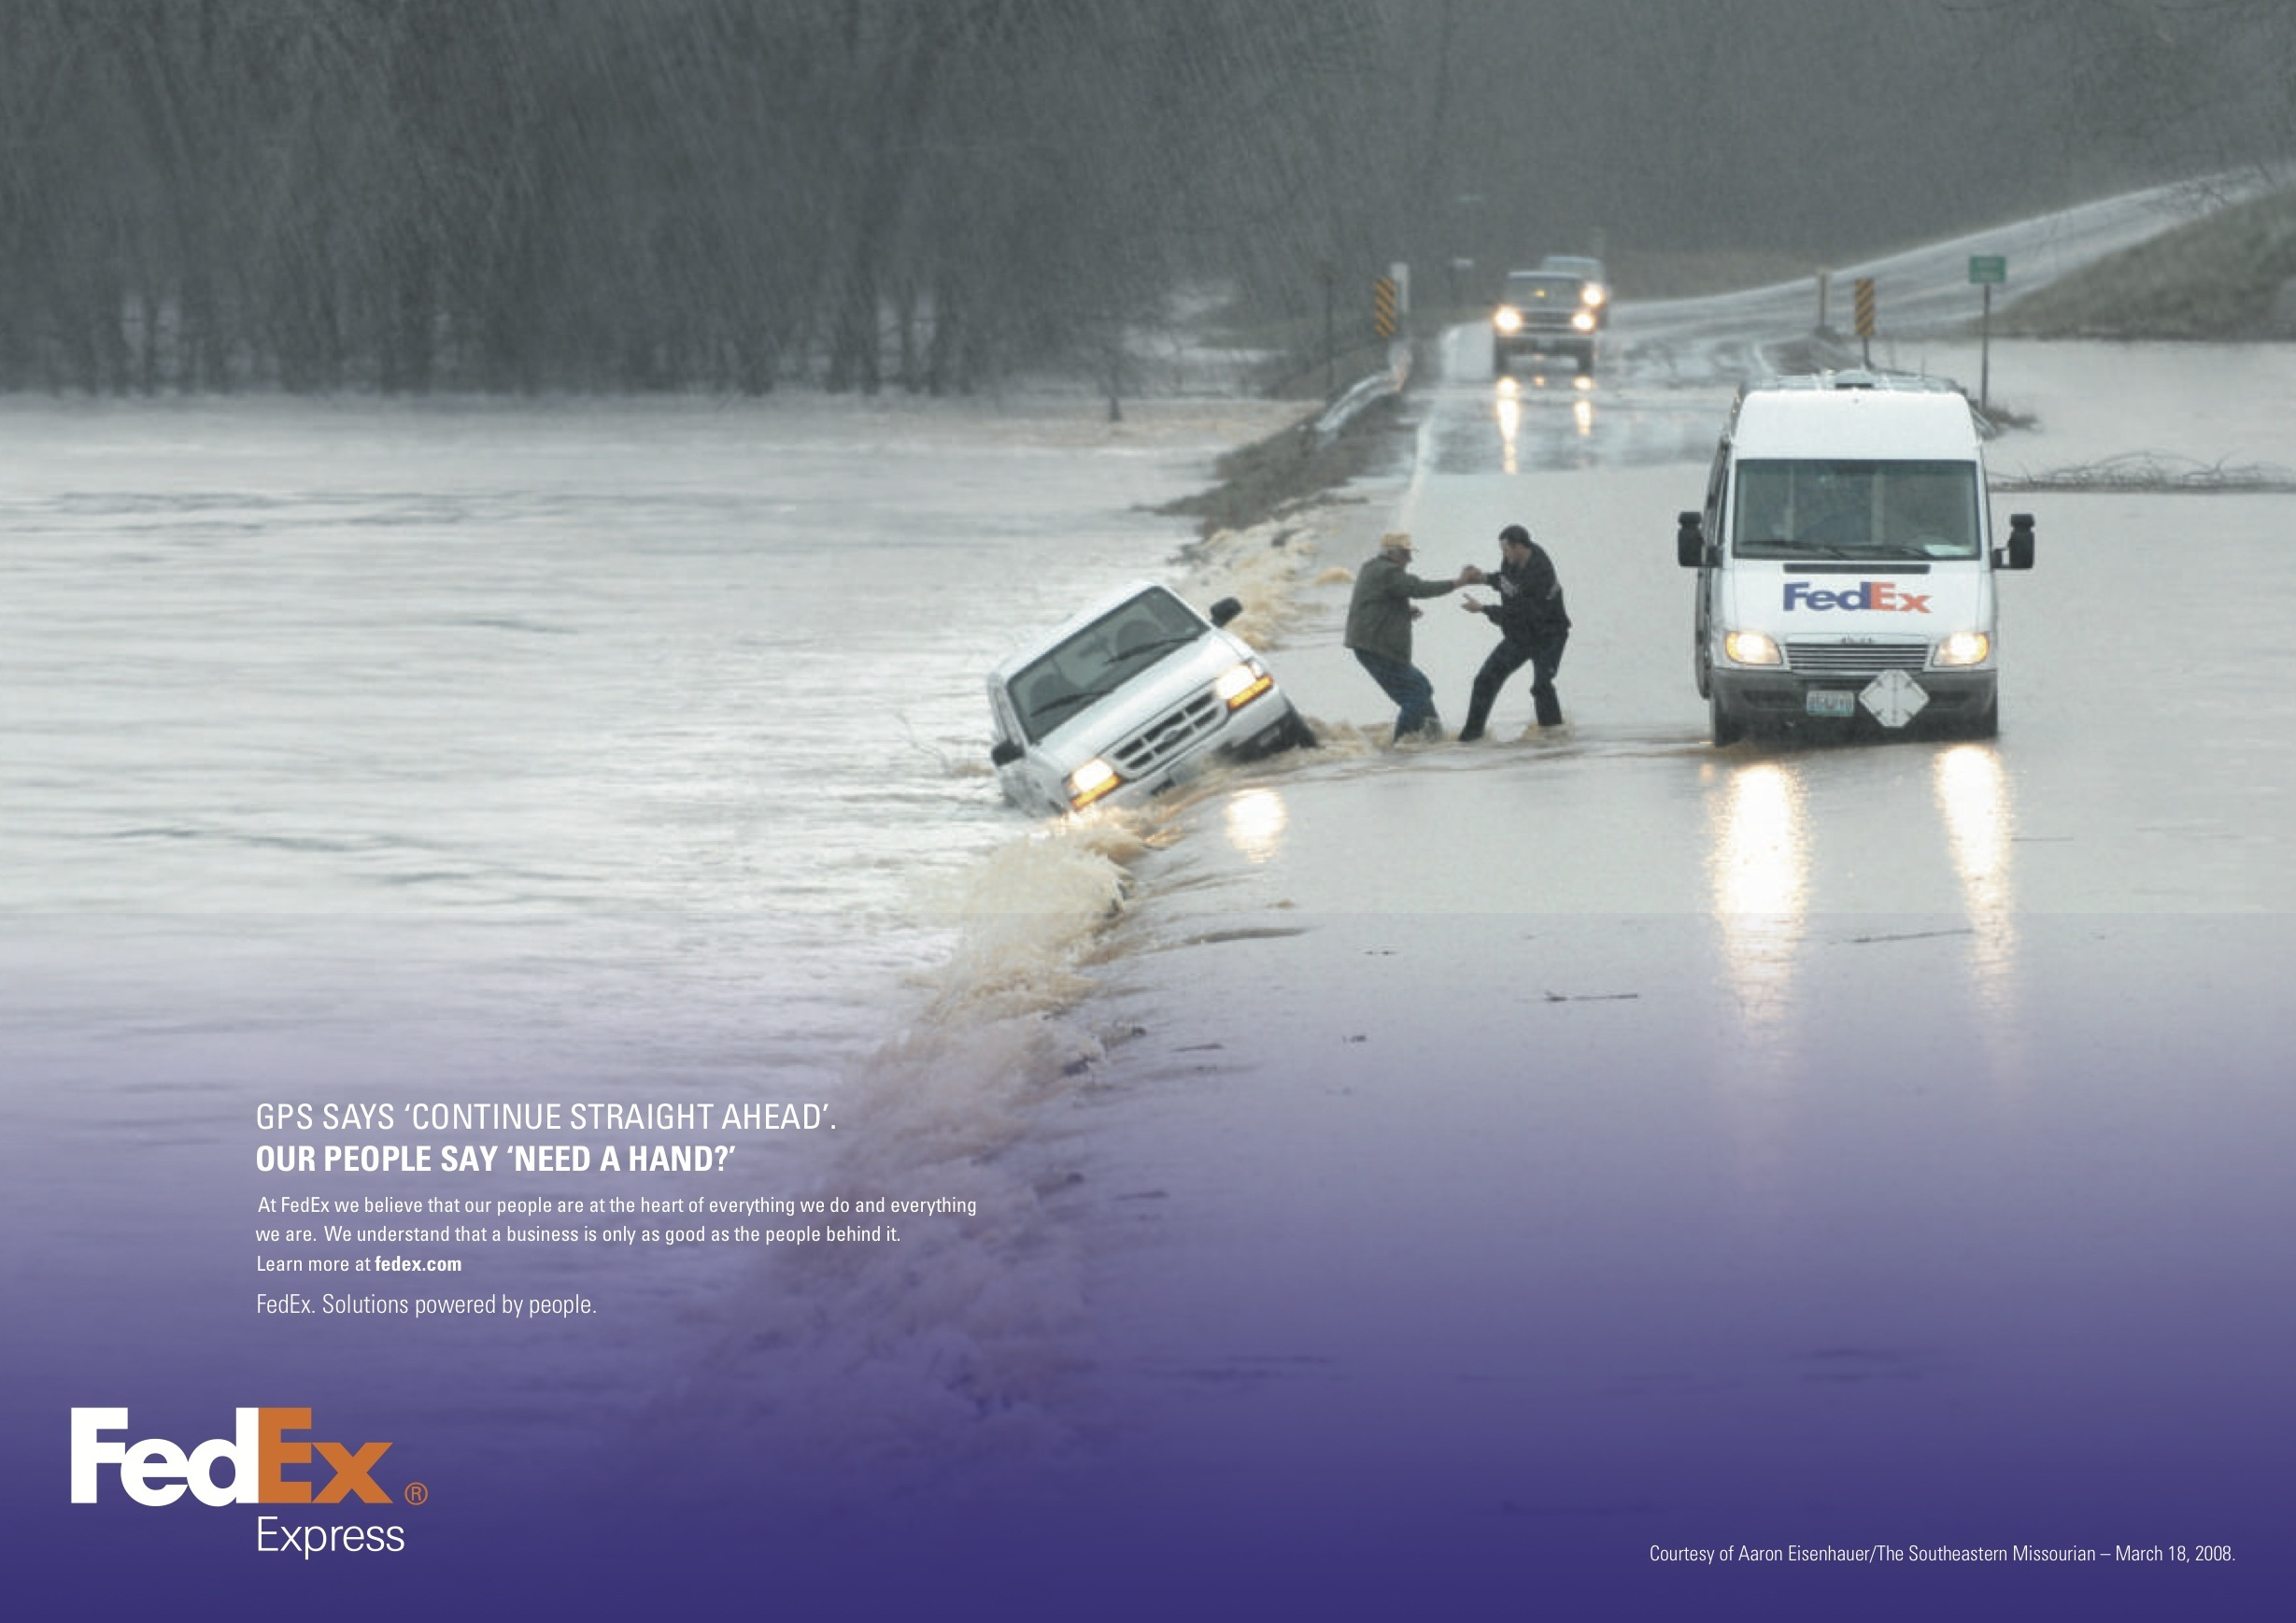 FedEx solutions powered by people campaign